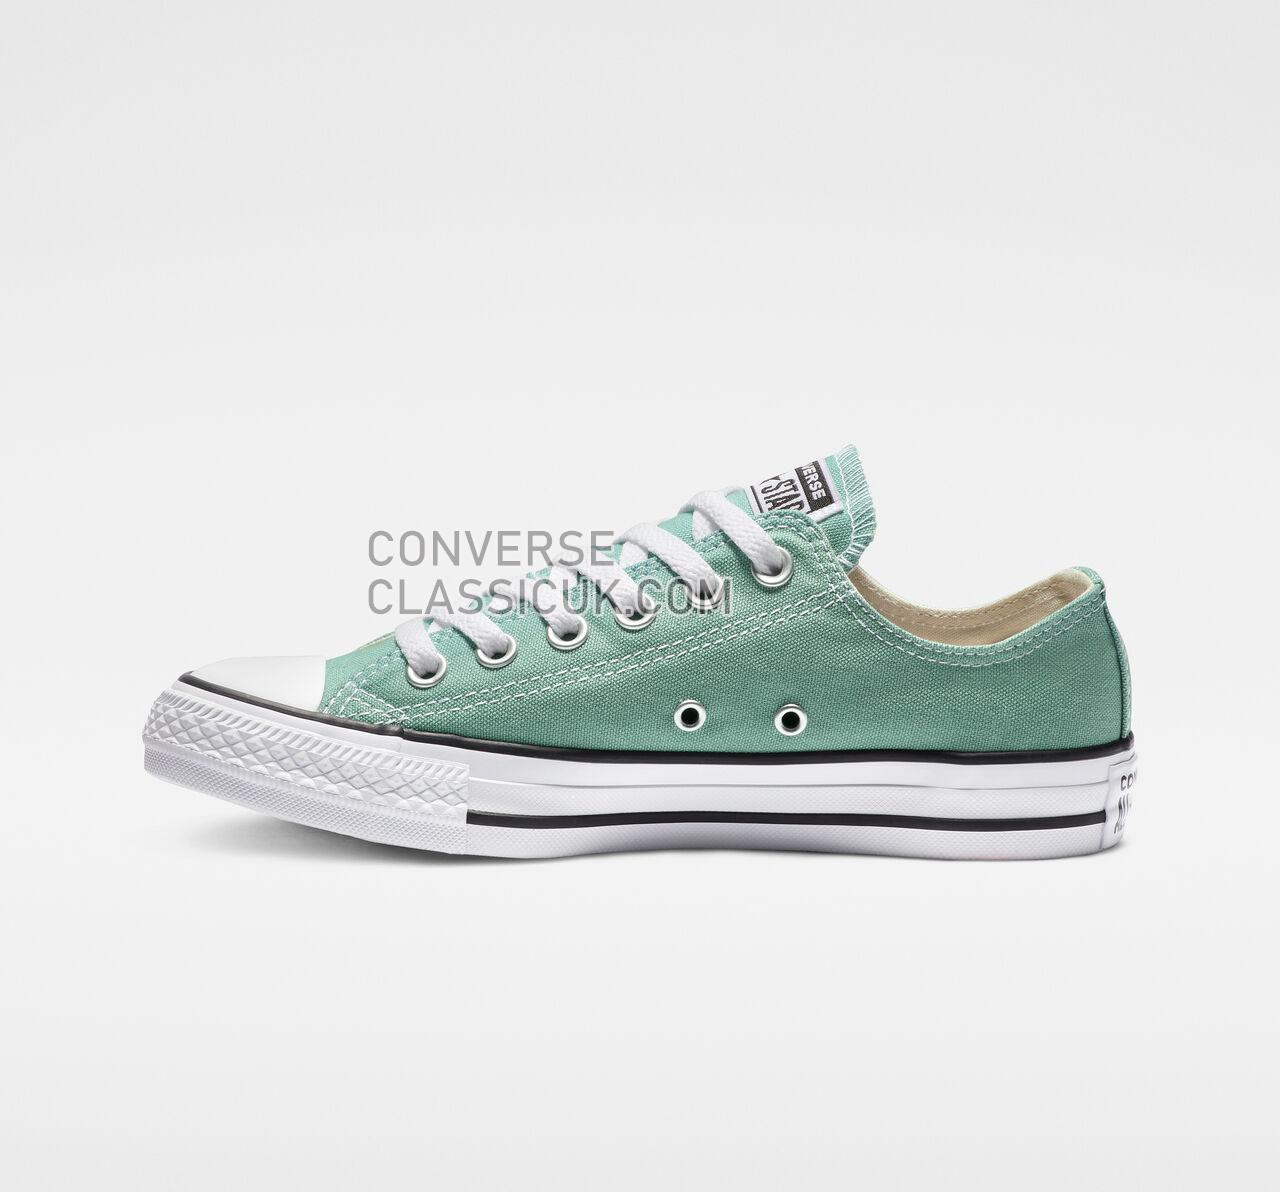 Converse Chuck Taylor All Star Seasonal Color Low Top Mens Womens Unisex 163354F Mineral Teal Shoes